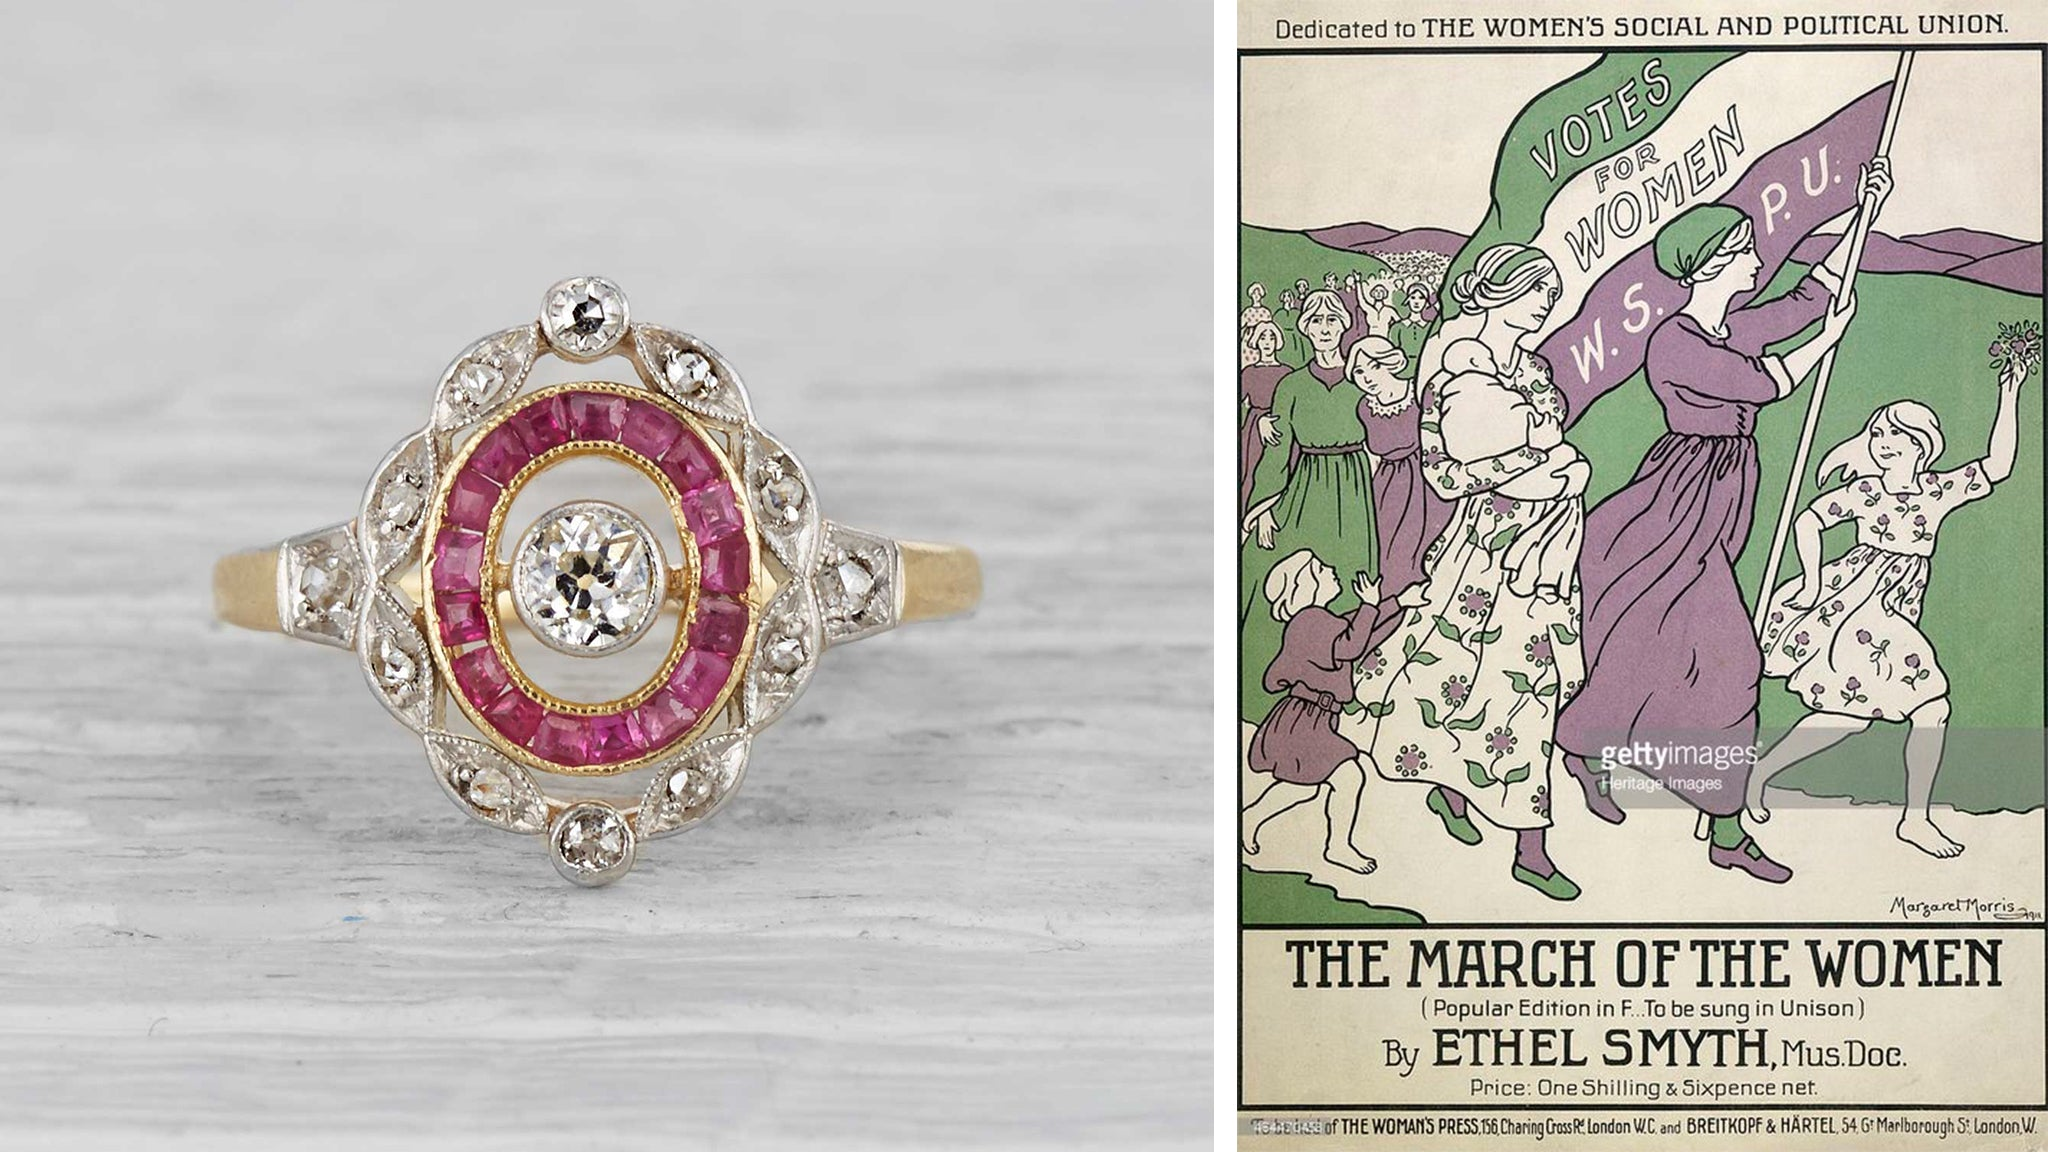 Edwardian Ring Worn by Woman in 1910